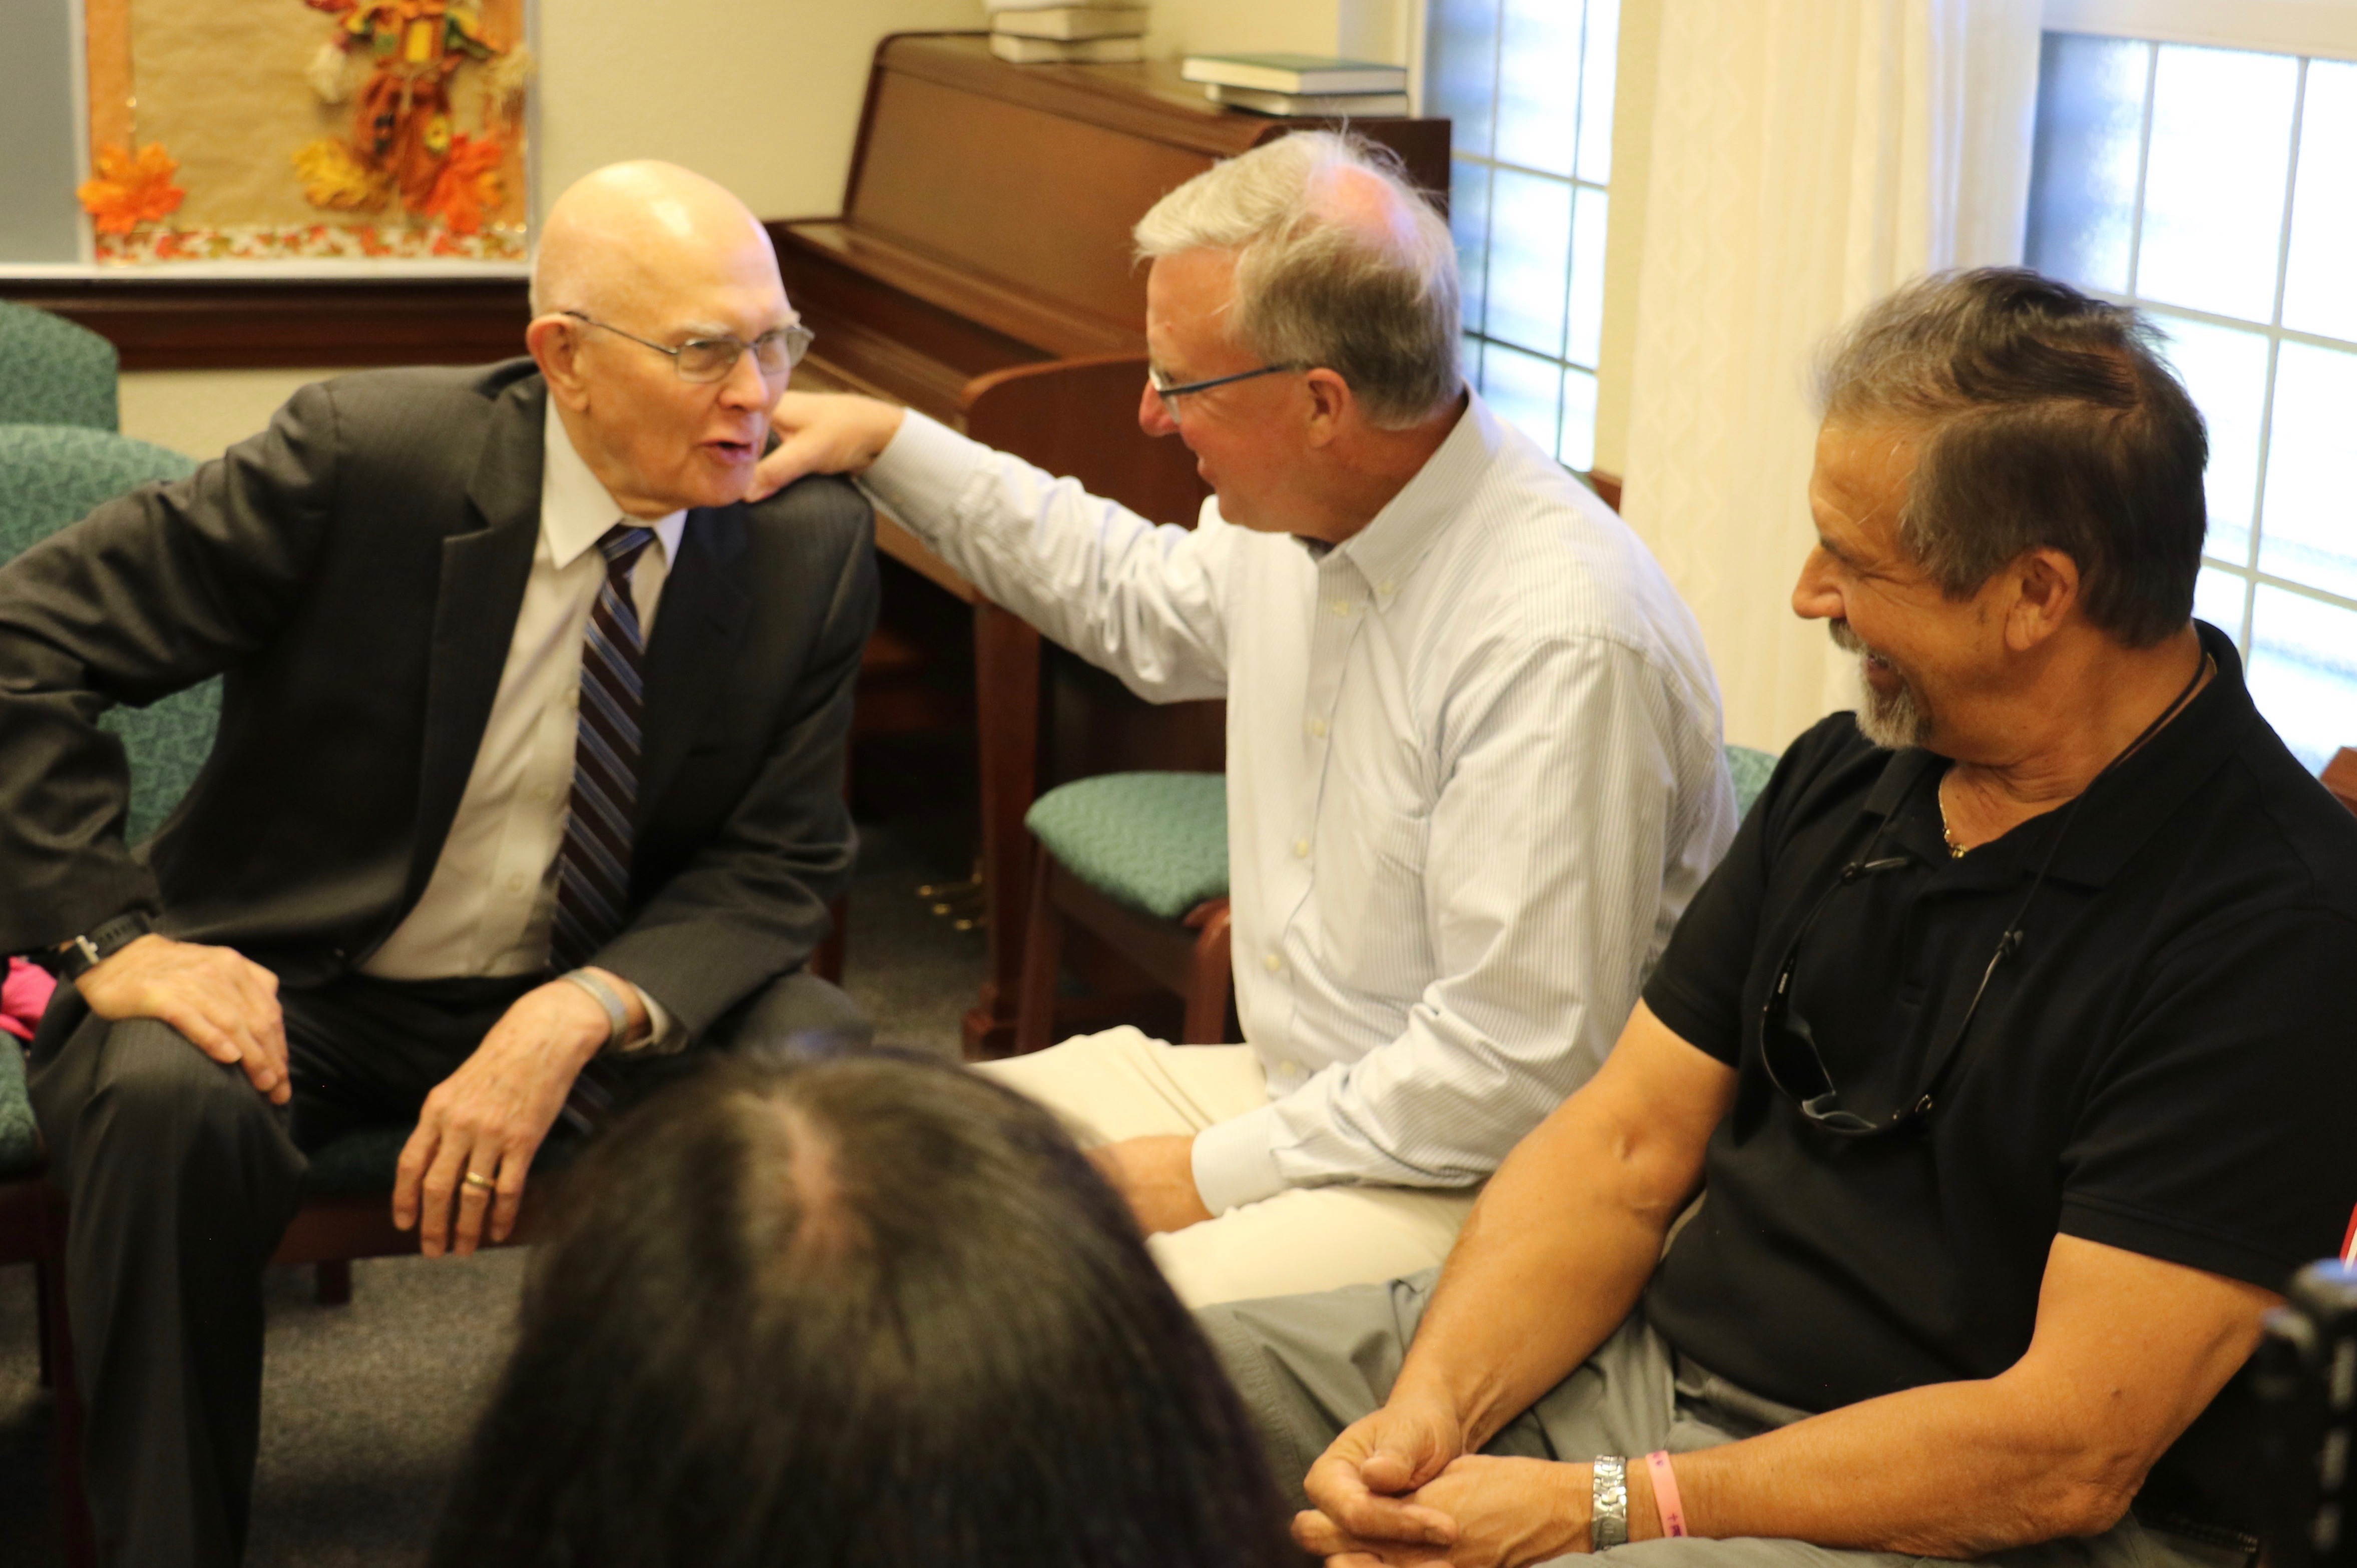 President Dallin H. Oaks, first counselor in the First Presidency of The Church of Jesus Christ of Latter-day Saints, left, meets with Panama City, Florida, civic leader William Harrison and Panama City Mayor Greg Brudwick on Oct. 21, 2018.